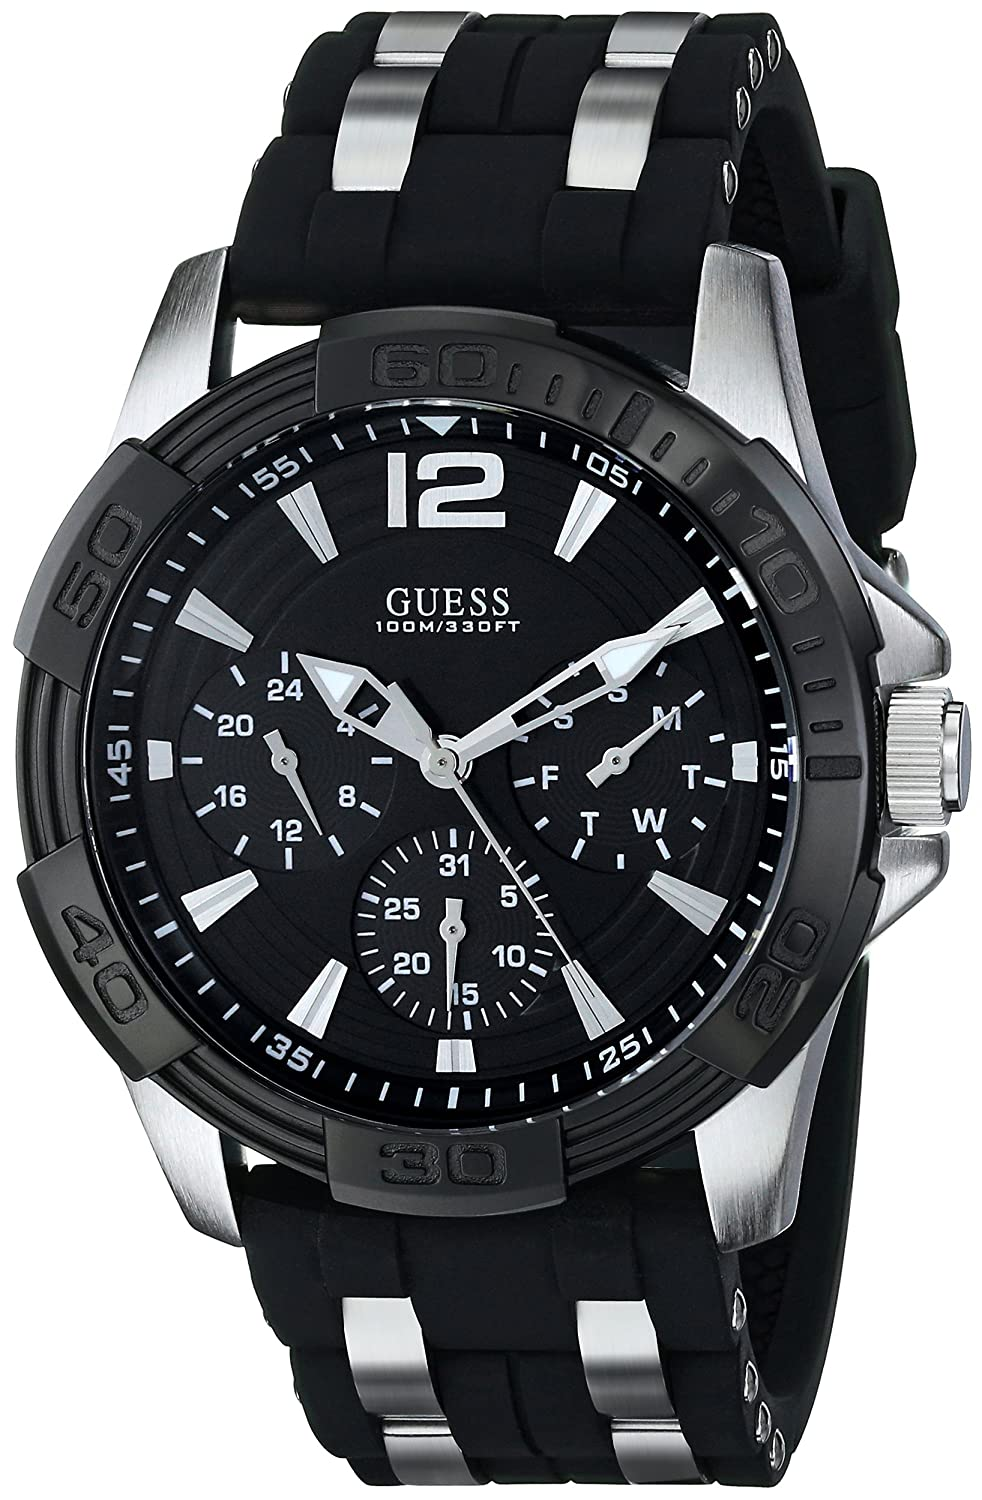 Guess Black Stainless Steel Stain Resistant Silicone Watch With Day Date 24 Hour Military Int L Time Color Black Model U0366g1